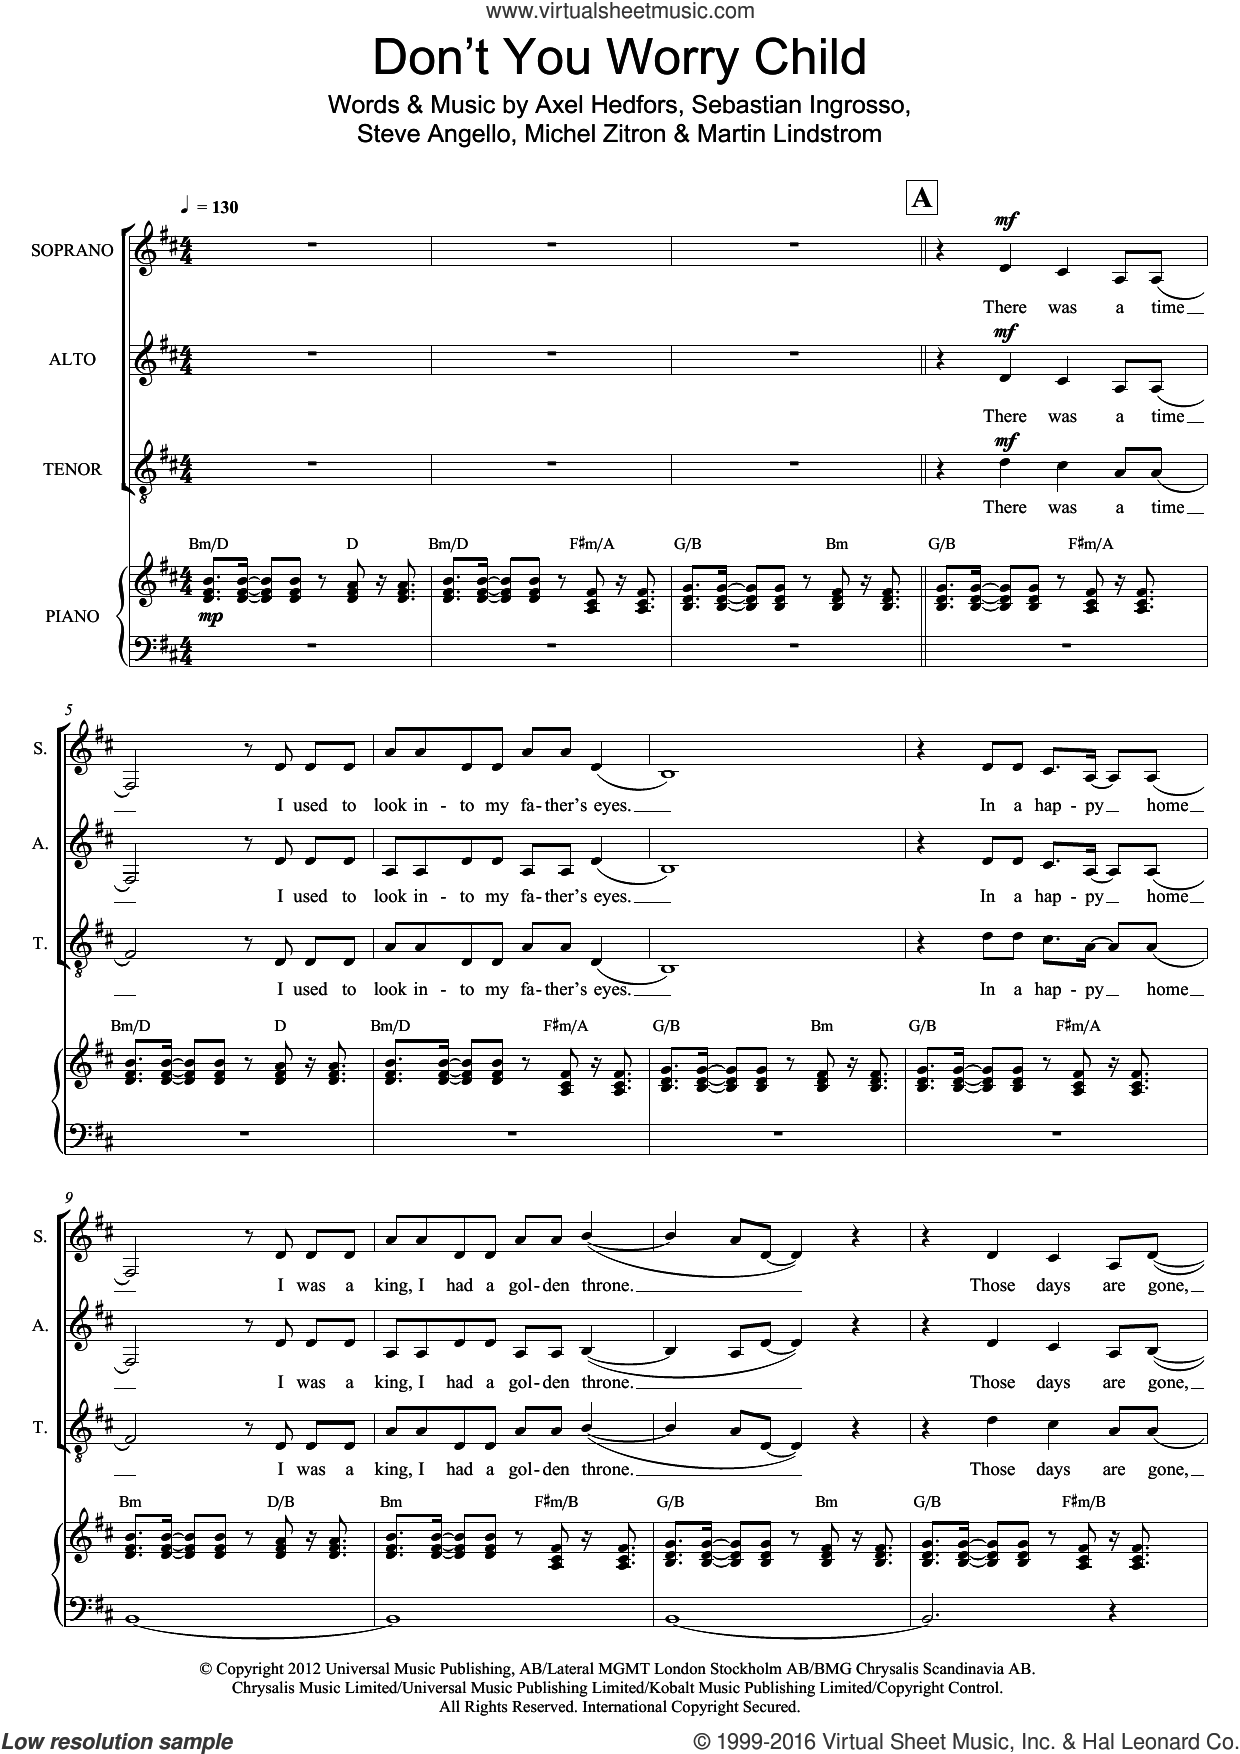 Don't You Worry Child sheet music for voice, piano or guitar by Axel Hedfors, Swedish House Mafia, Michel Zitron and Steve Angello. Score Image Preview.